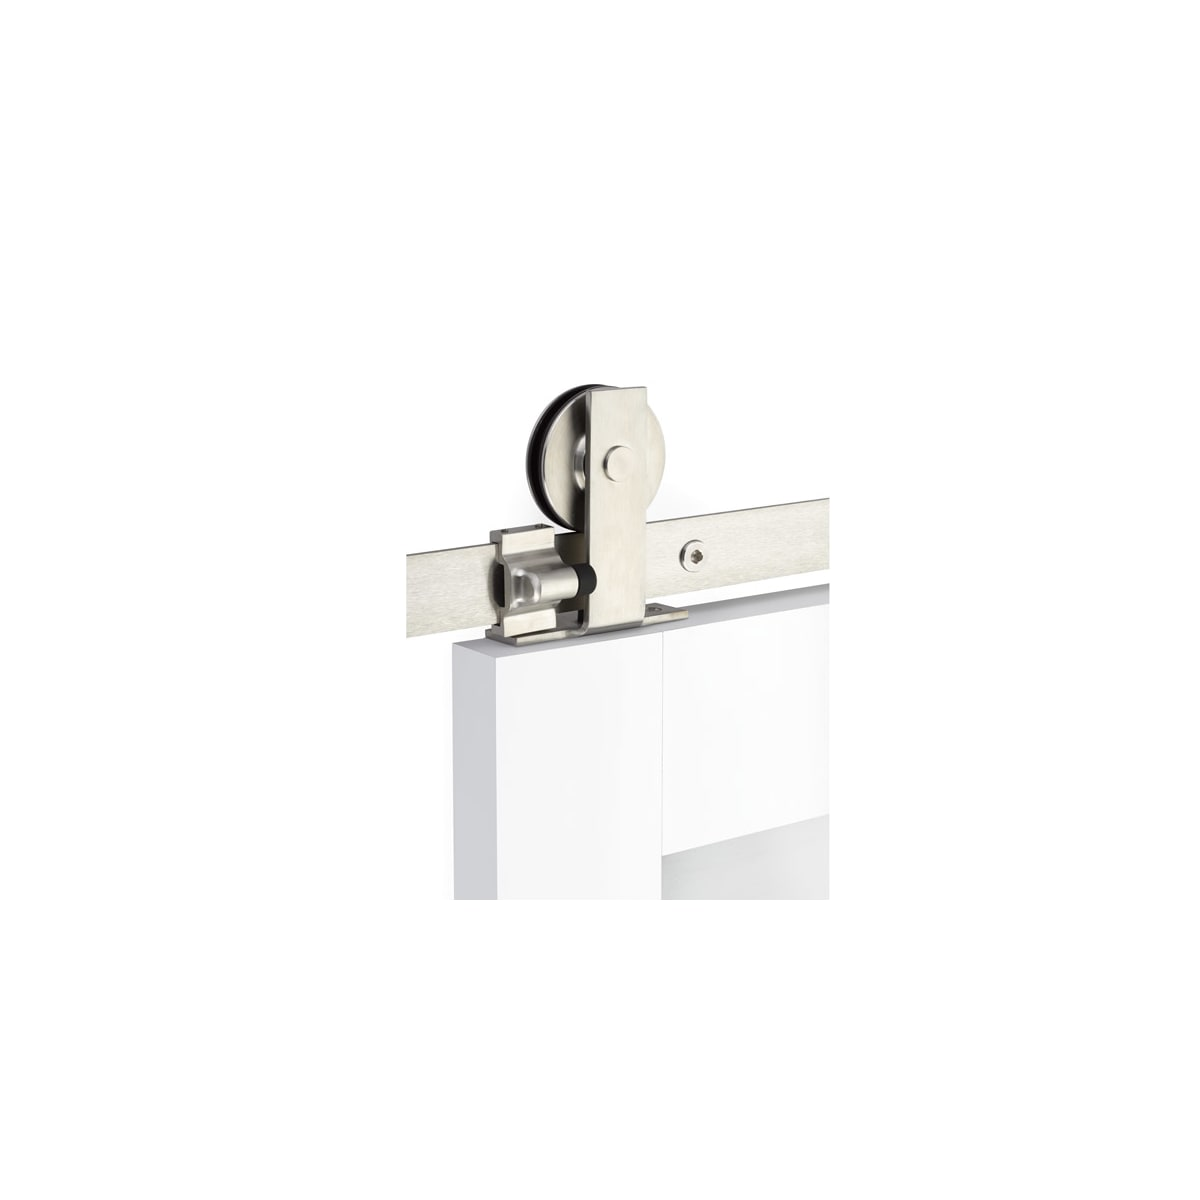 Emtek Modern Rectangular 156 Inch Top Mount Double Barn Door Hardware Set - Includes Track, Hangers, and Matching Hardware